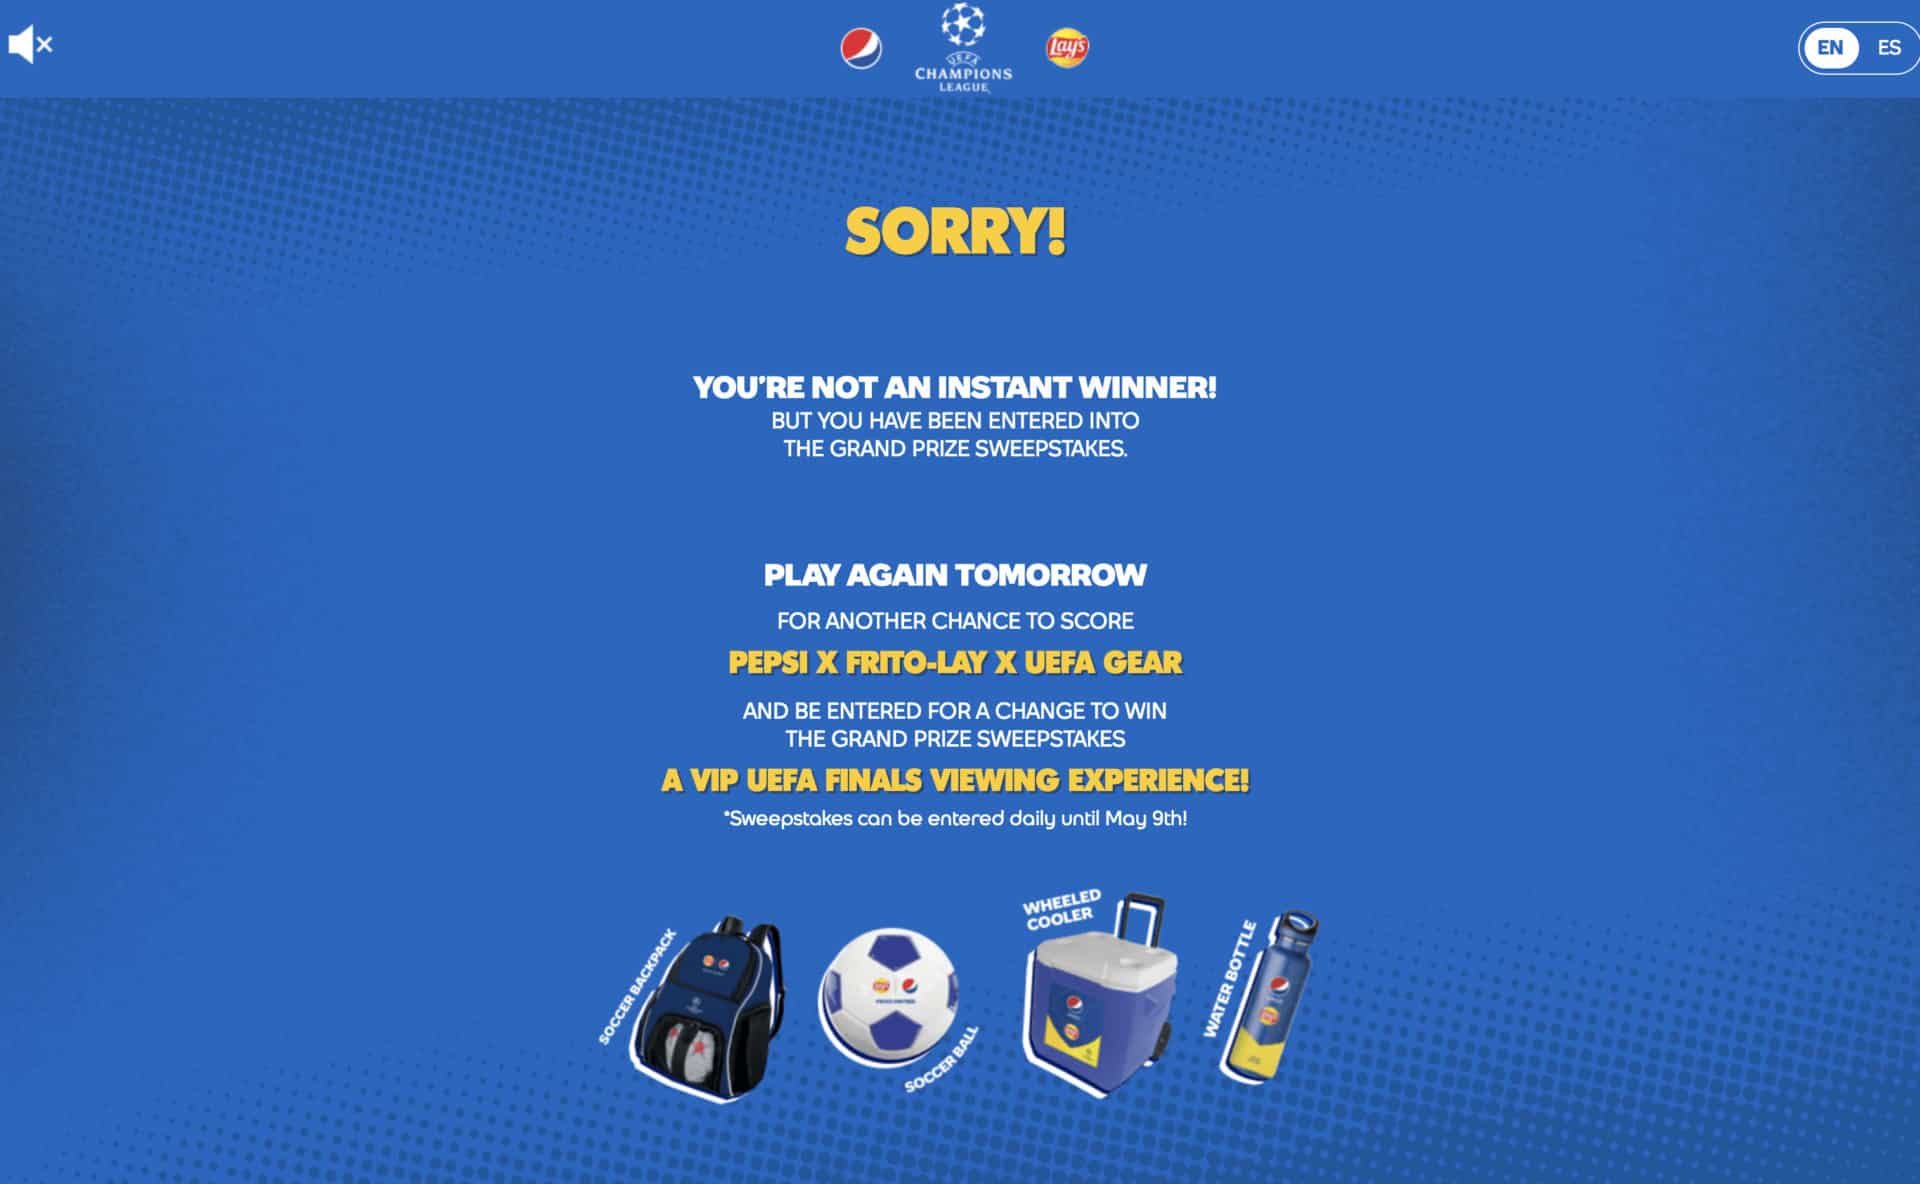 Pepsi + Lays Instant Win Promotion